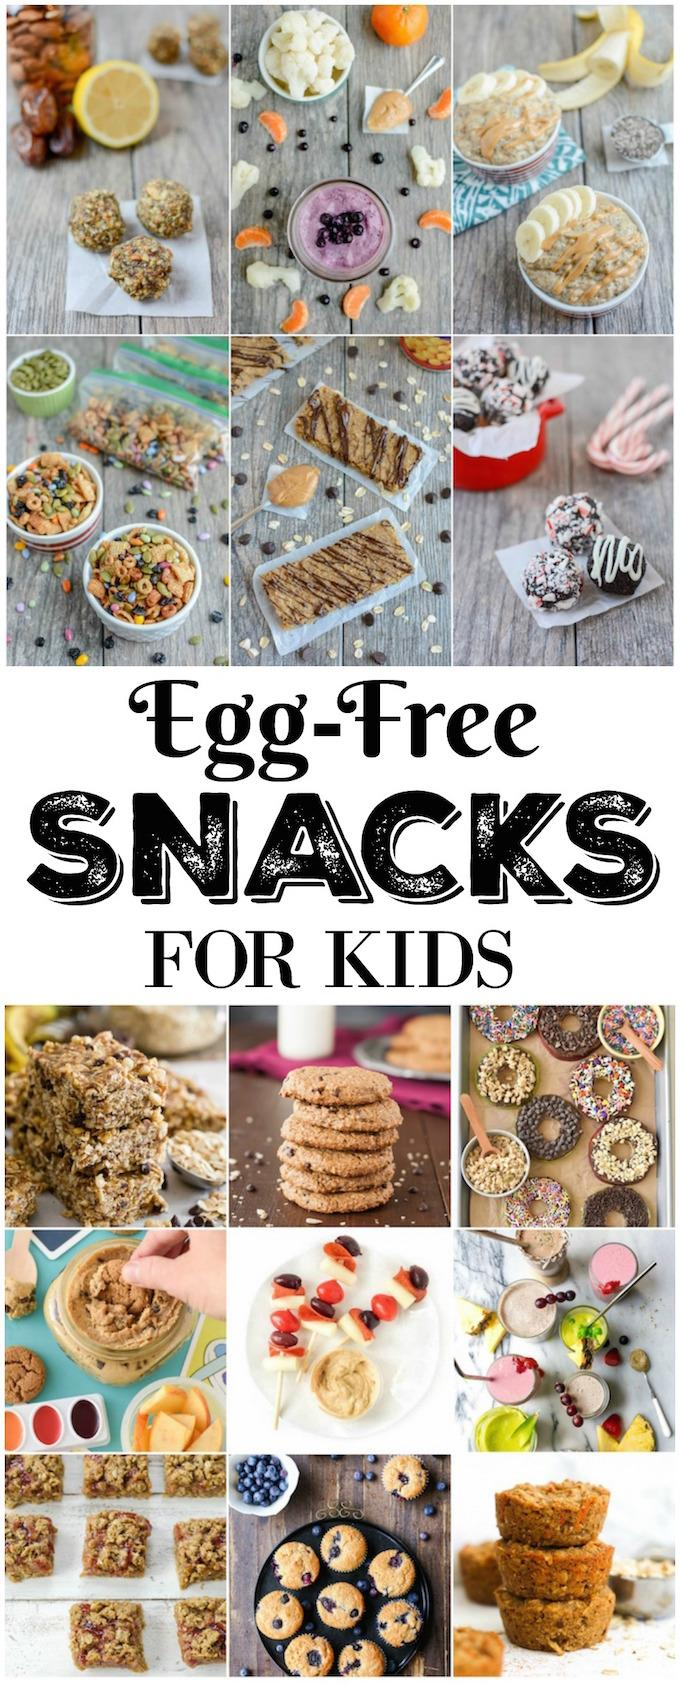 These Egg-Free Snacks for kids can be enjoyed by children with an egg allergy and those without. They also make a healthy snack for adults!